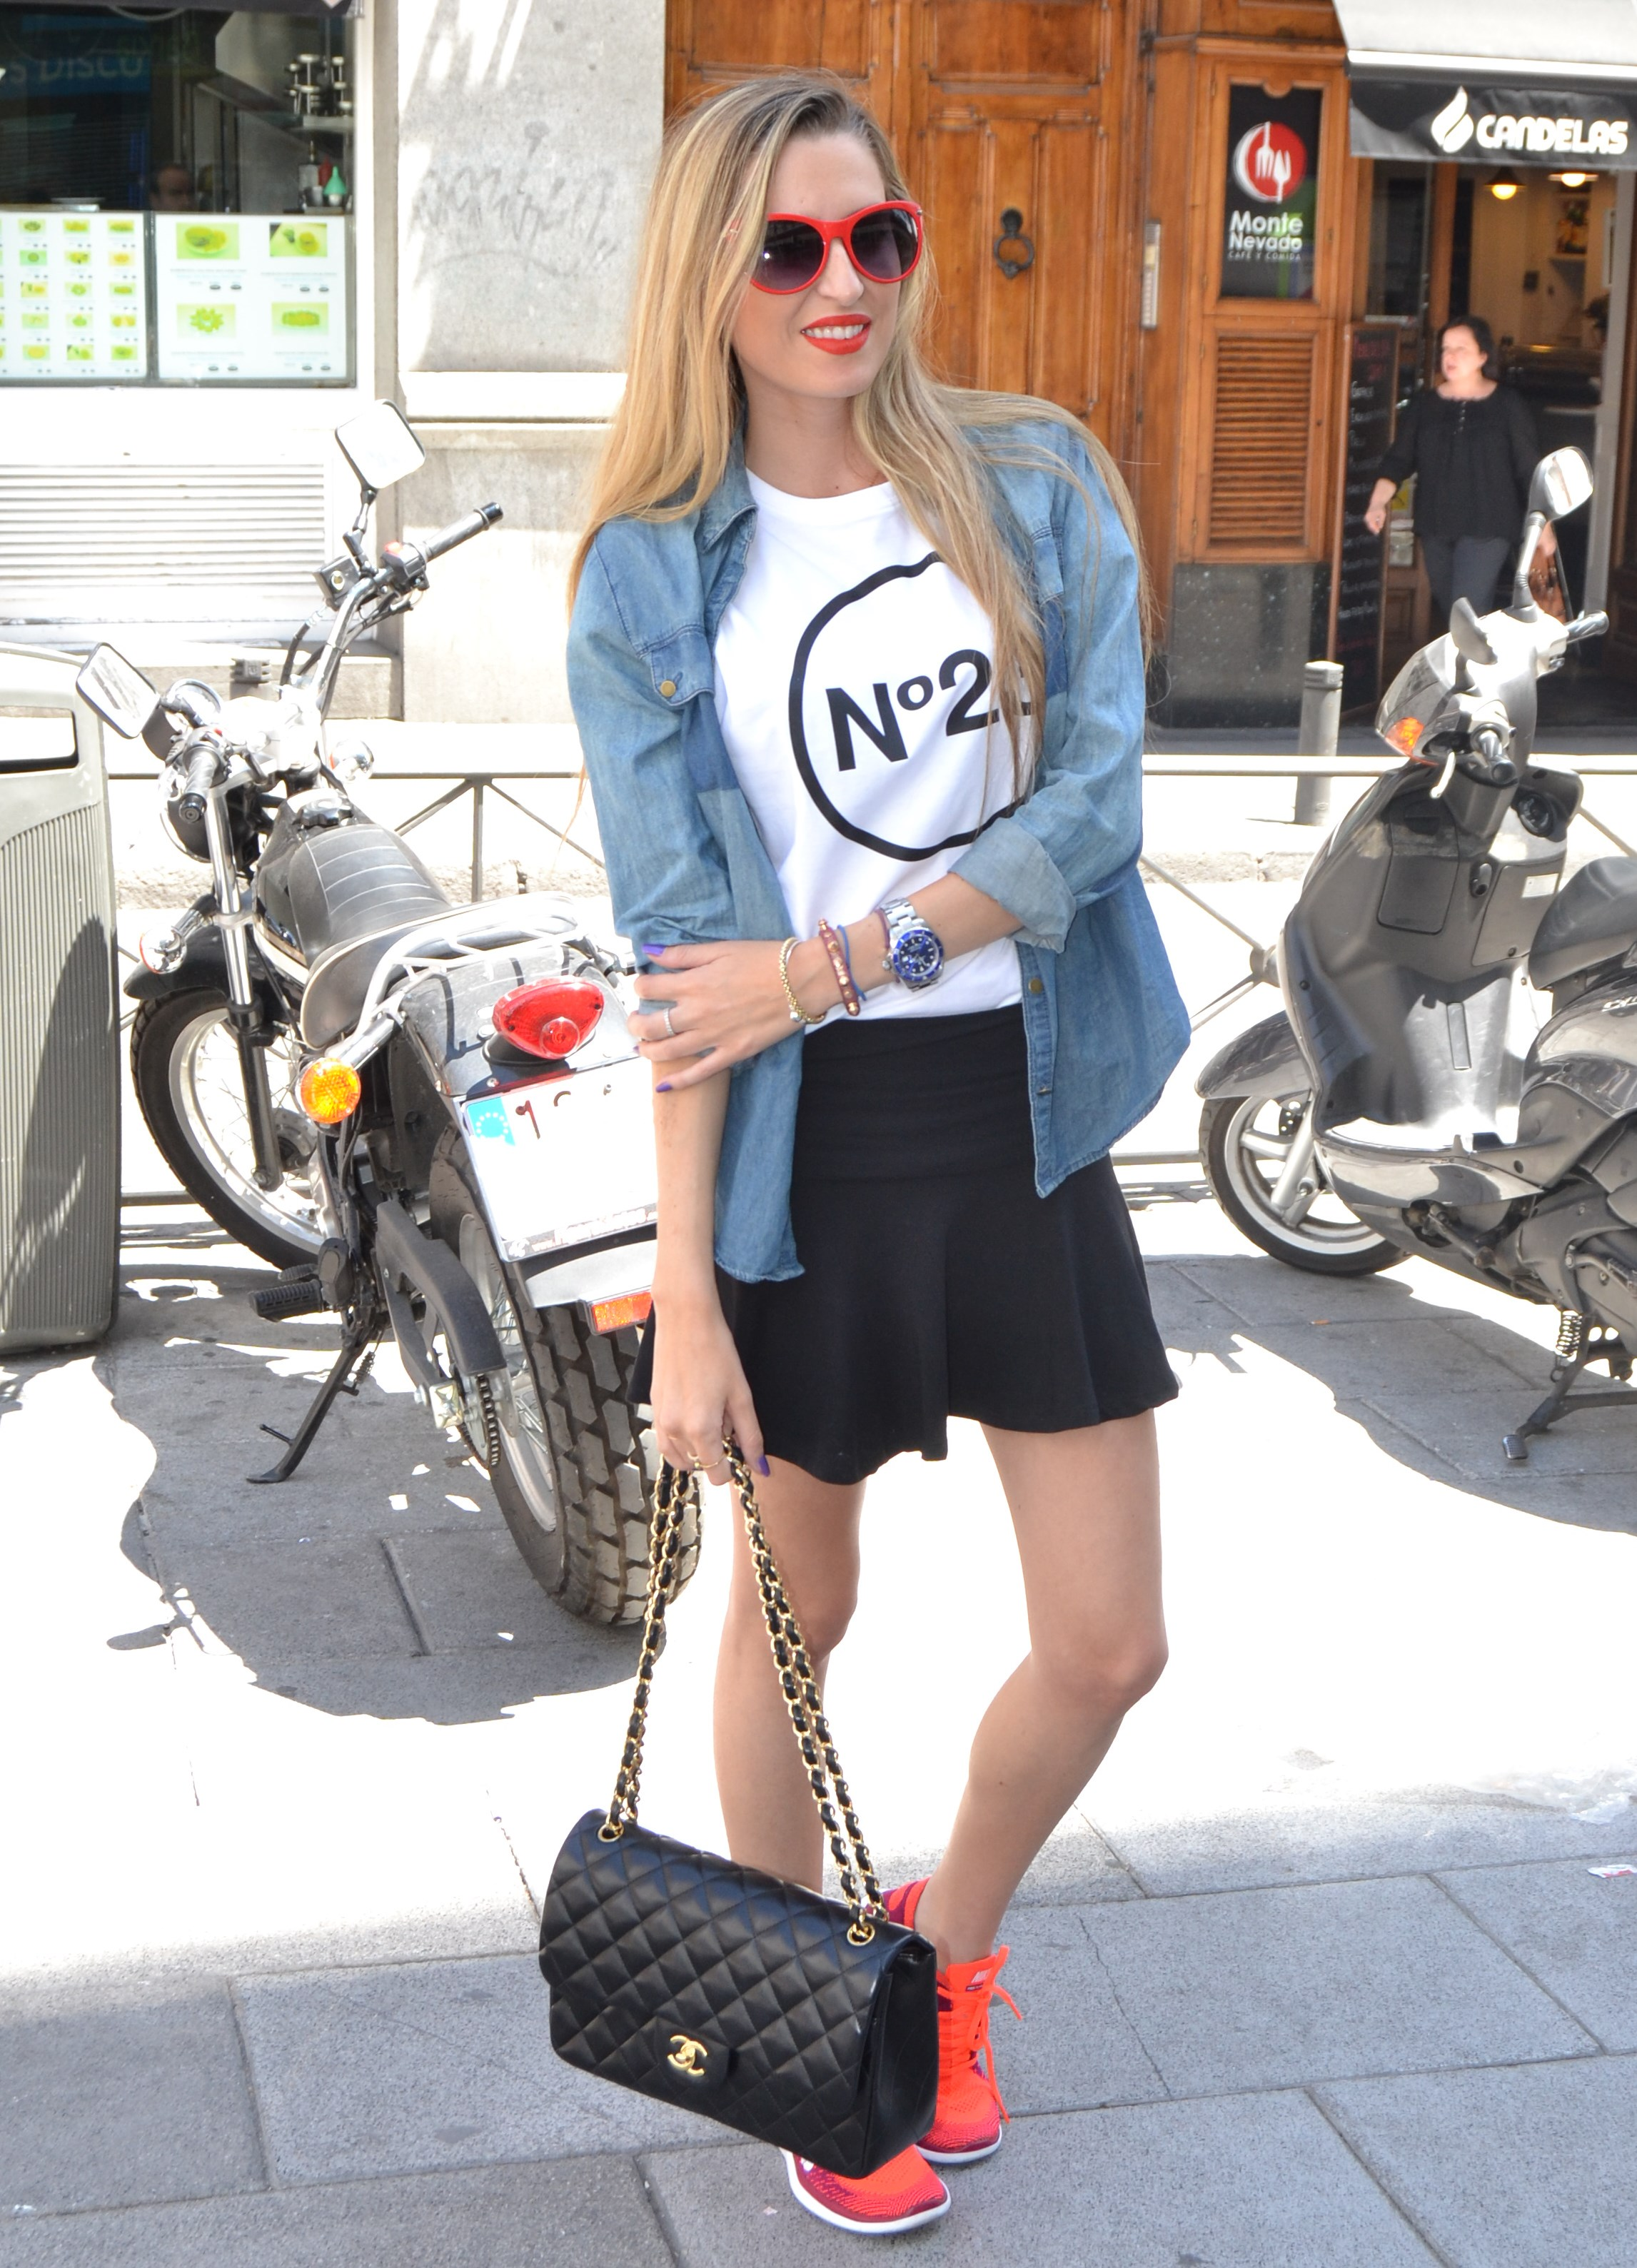 Nike_Free_FlyKnight_Sneakers_Chanel_255_Chanel_Bag_Guess_Sunglasses_Denim_Shirt_Lara_Martin_Gilarranz_Bymyheels (3)